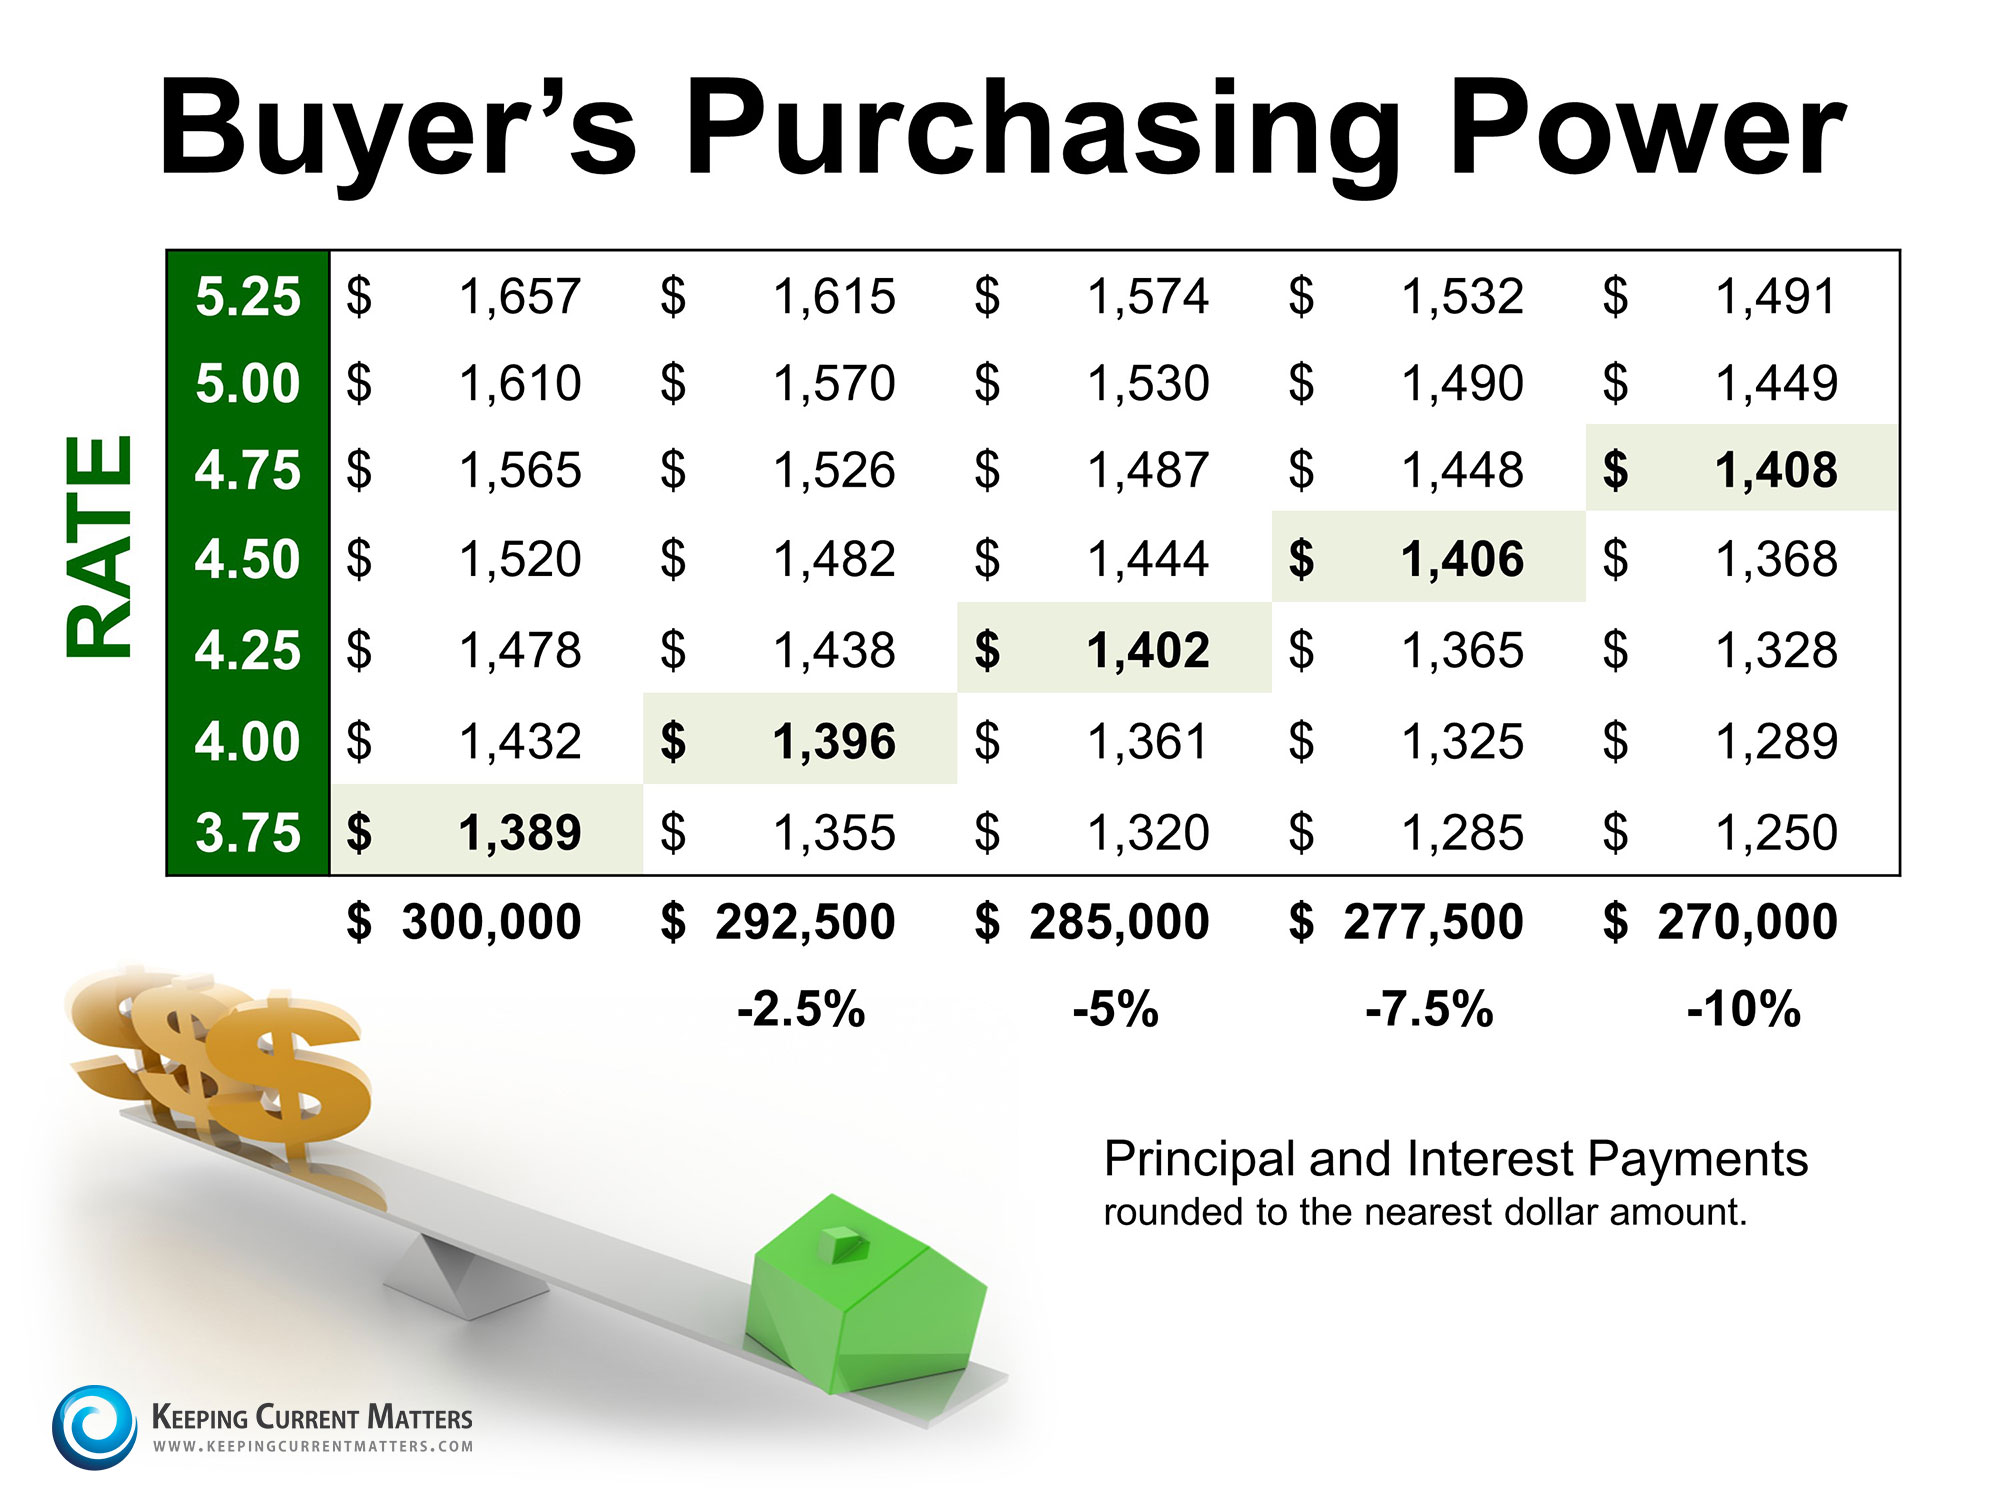 Buyers Purchasing Power   Keeping Current Matters